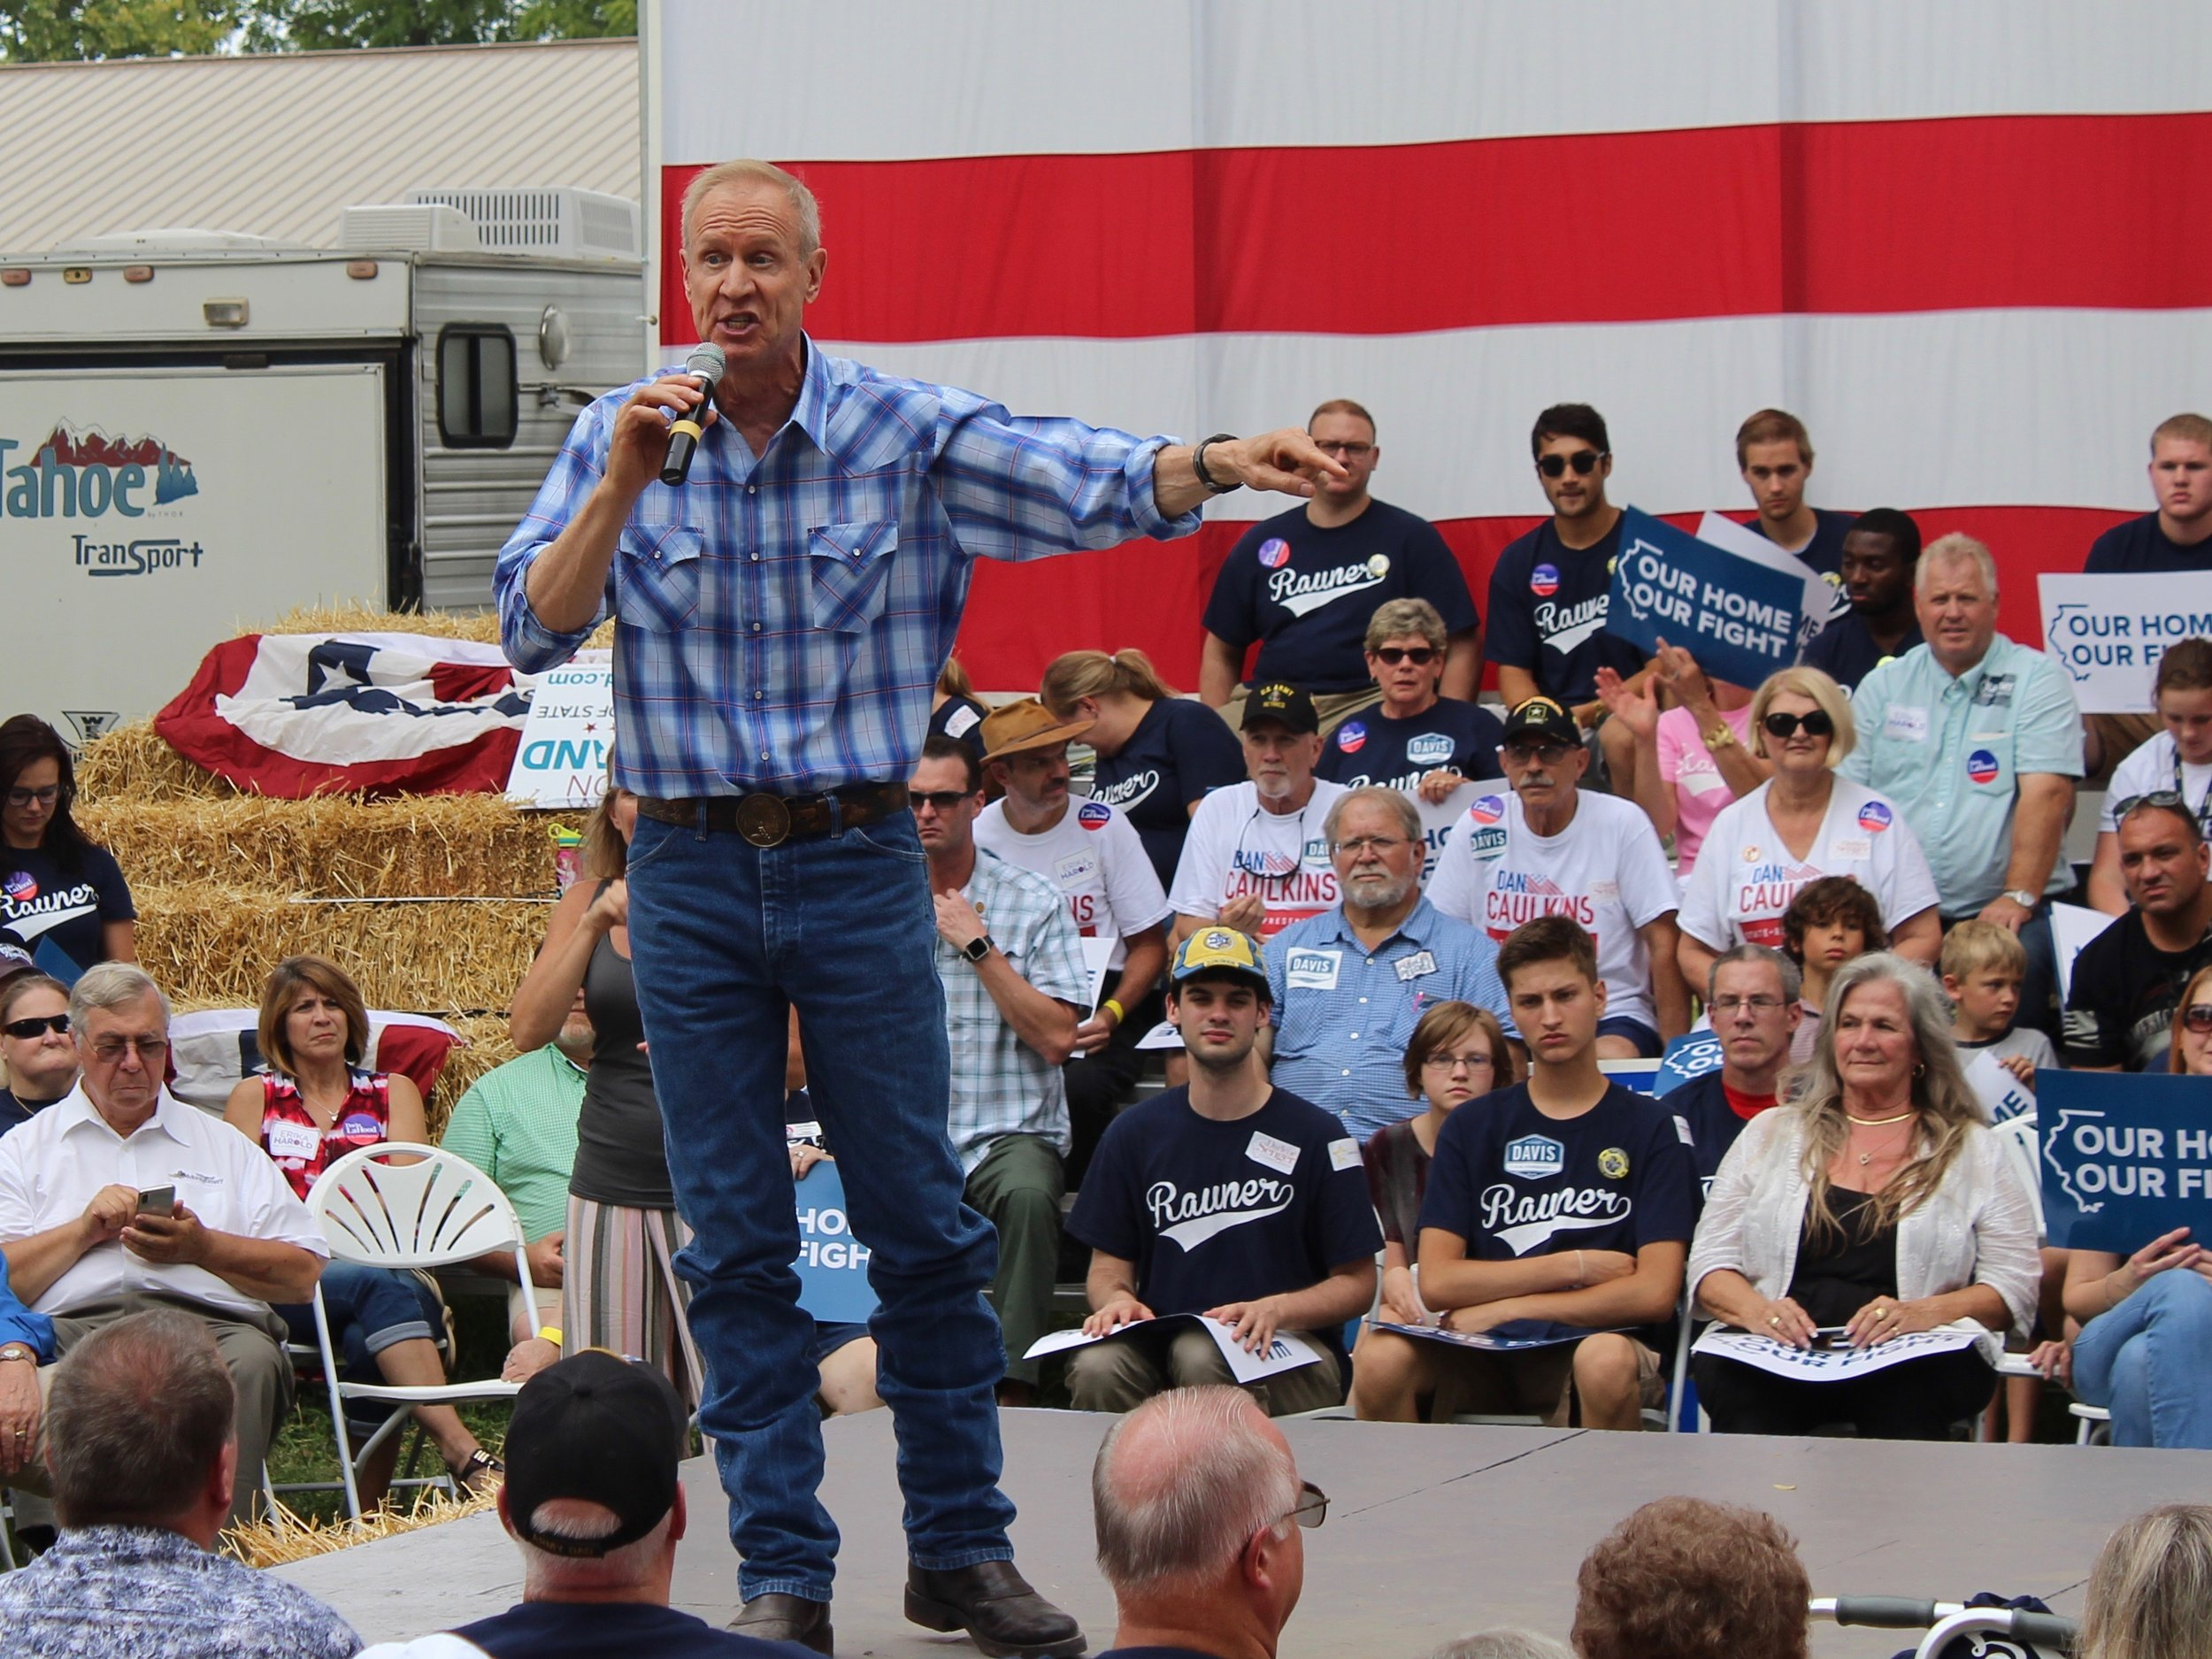 Gov. Rauner has used public unions and their pensions as a political whipping boy, but that didn't stop his former private equity firm from profiting off them. (One Illinois/Ted Cox)